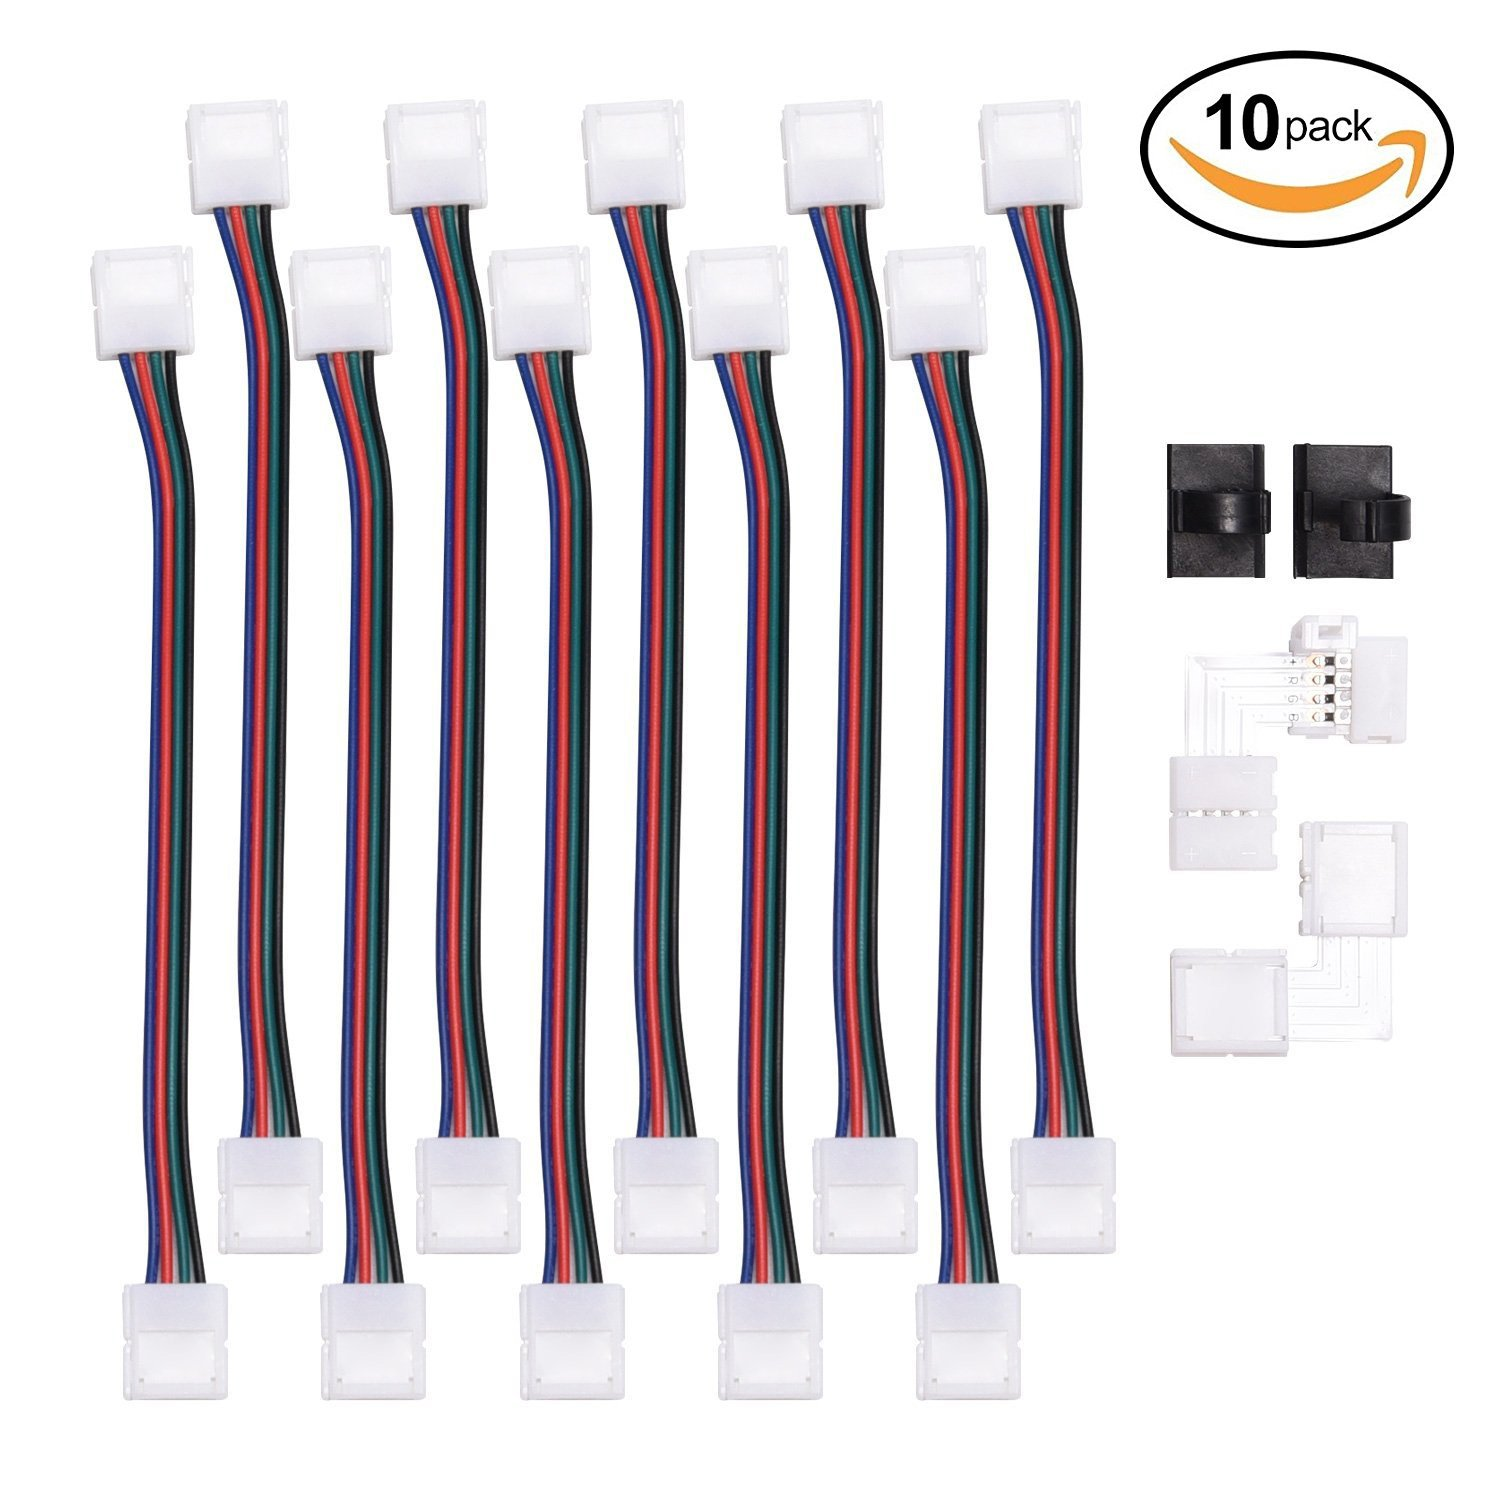 JACKYLED RGB 5050 3528 LED Light Strip Connector 4 Pins 10 mm Wide Strip to Strip Jumper 10-Pack Wire Solderless